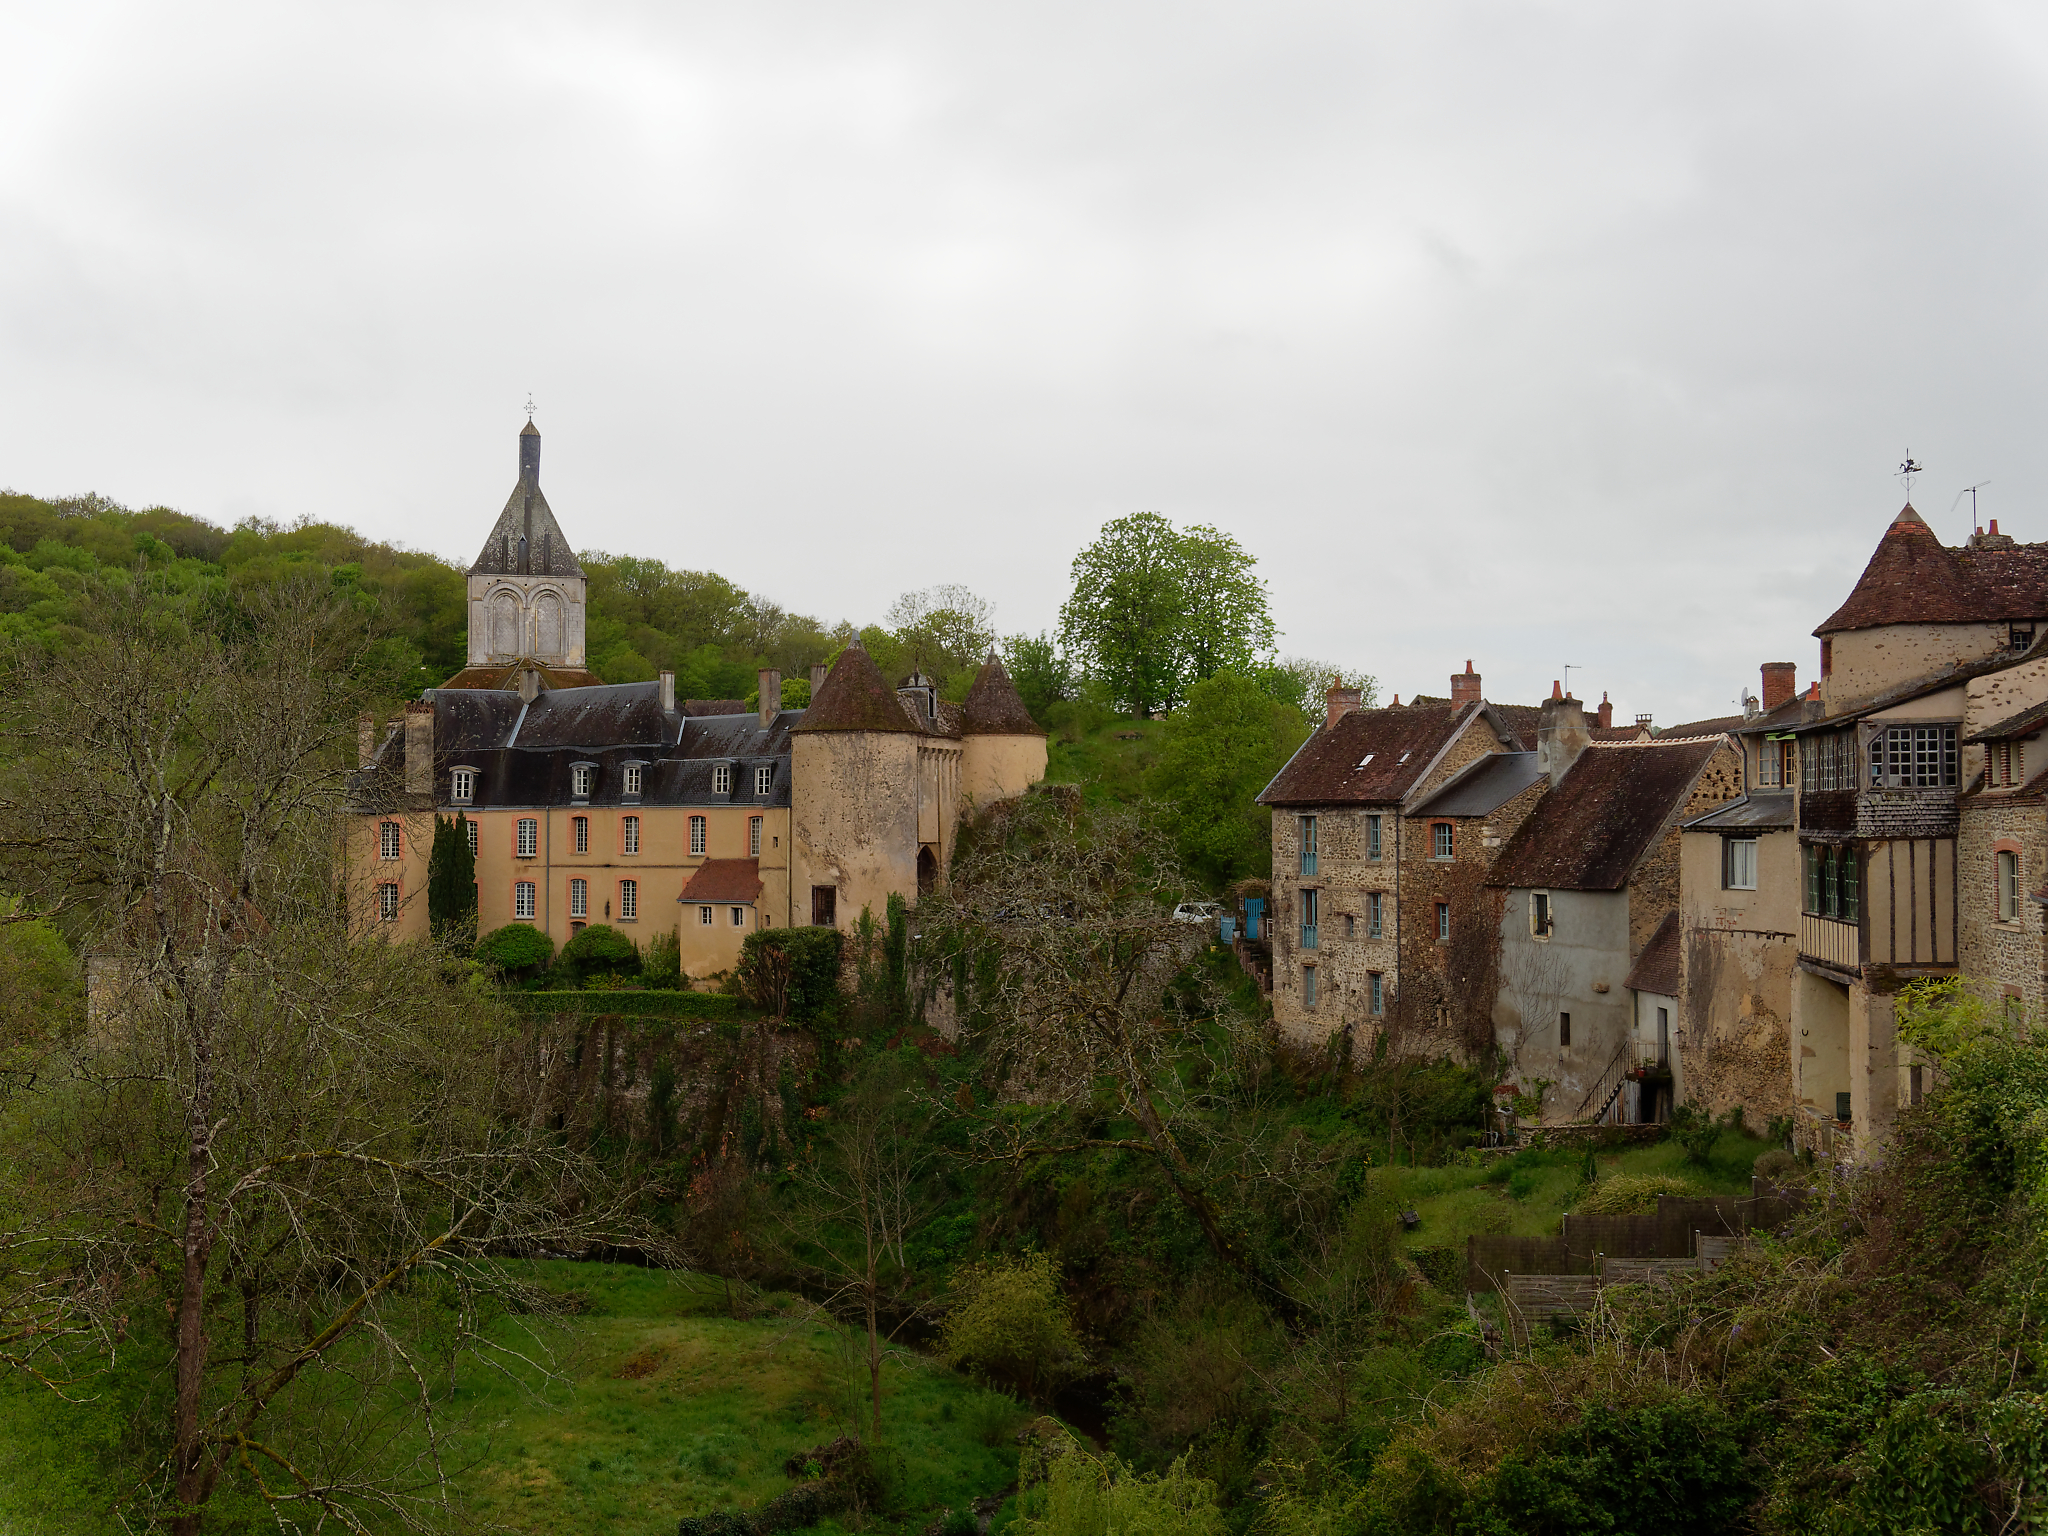 26 avril – Bourges – Guéret